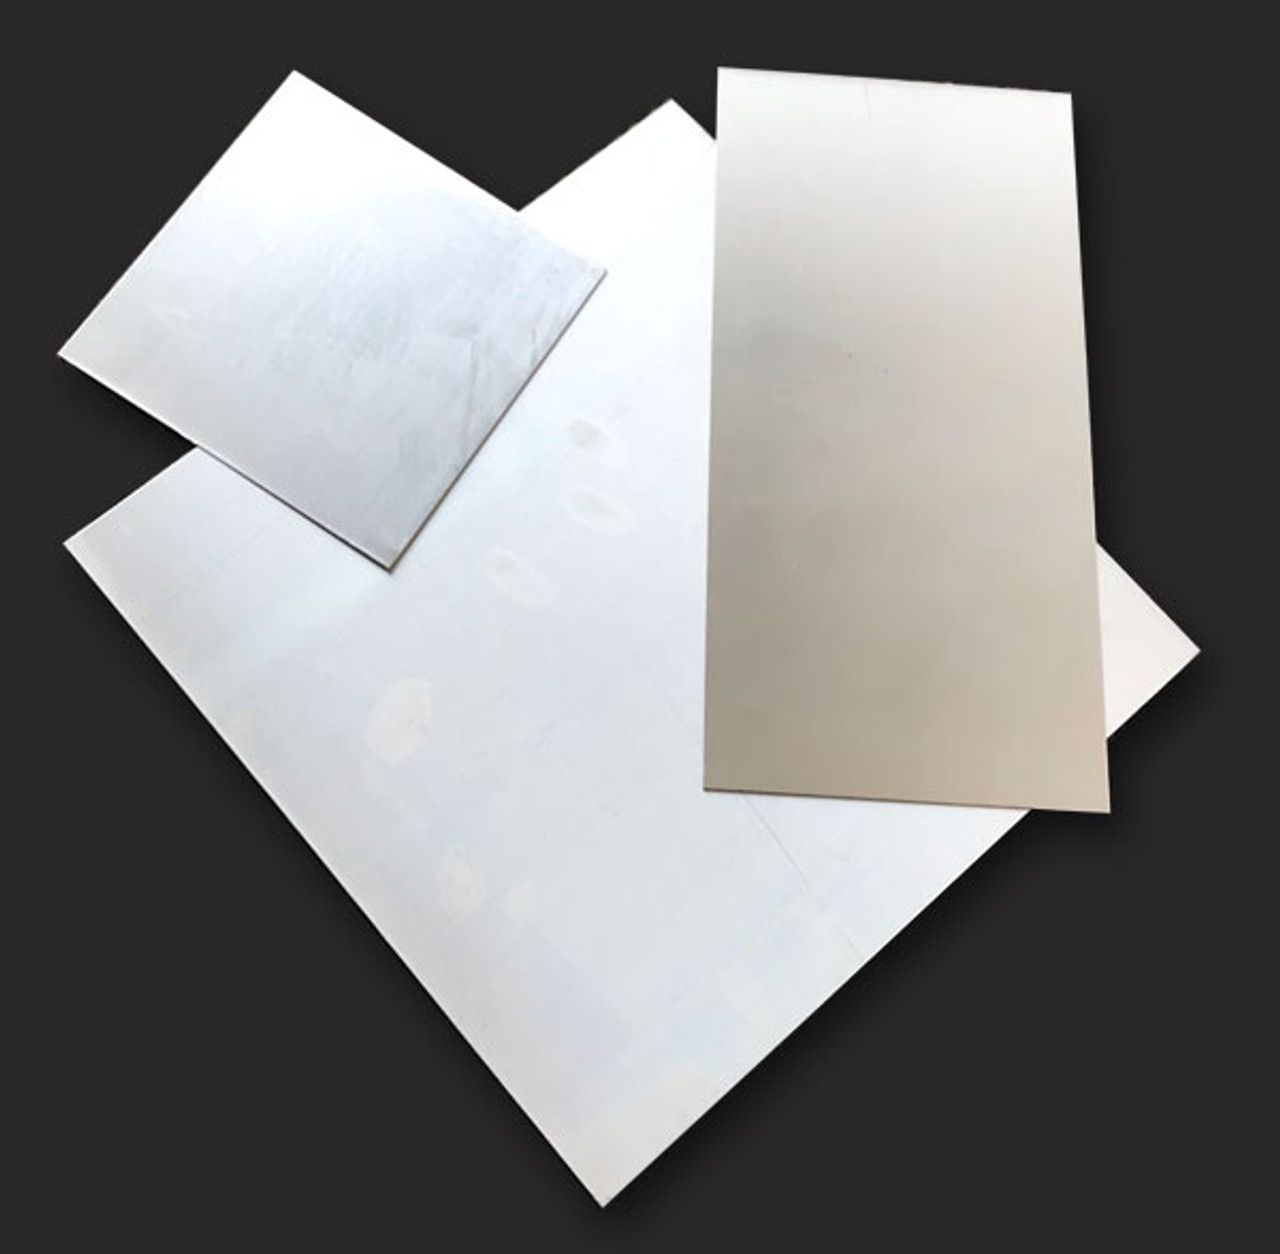 "Zinc Plate, Strip of zinc sheet metal (3"" x 12""), Thickness 0.030"" or 0.75 mm,"